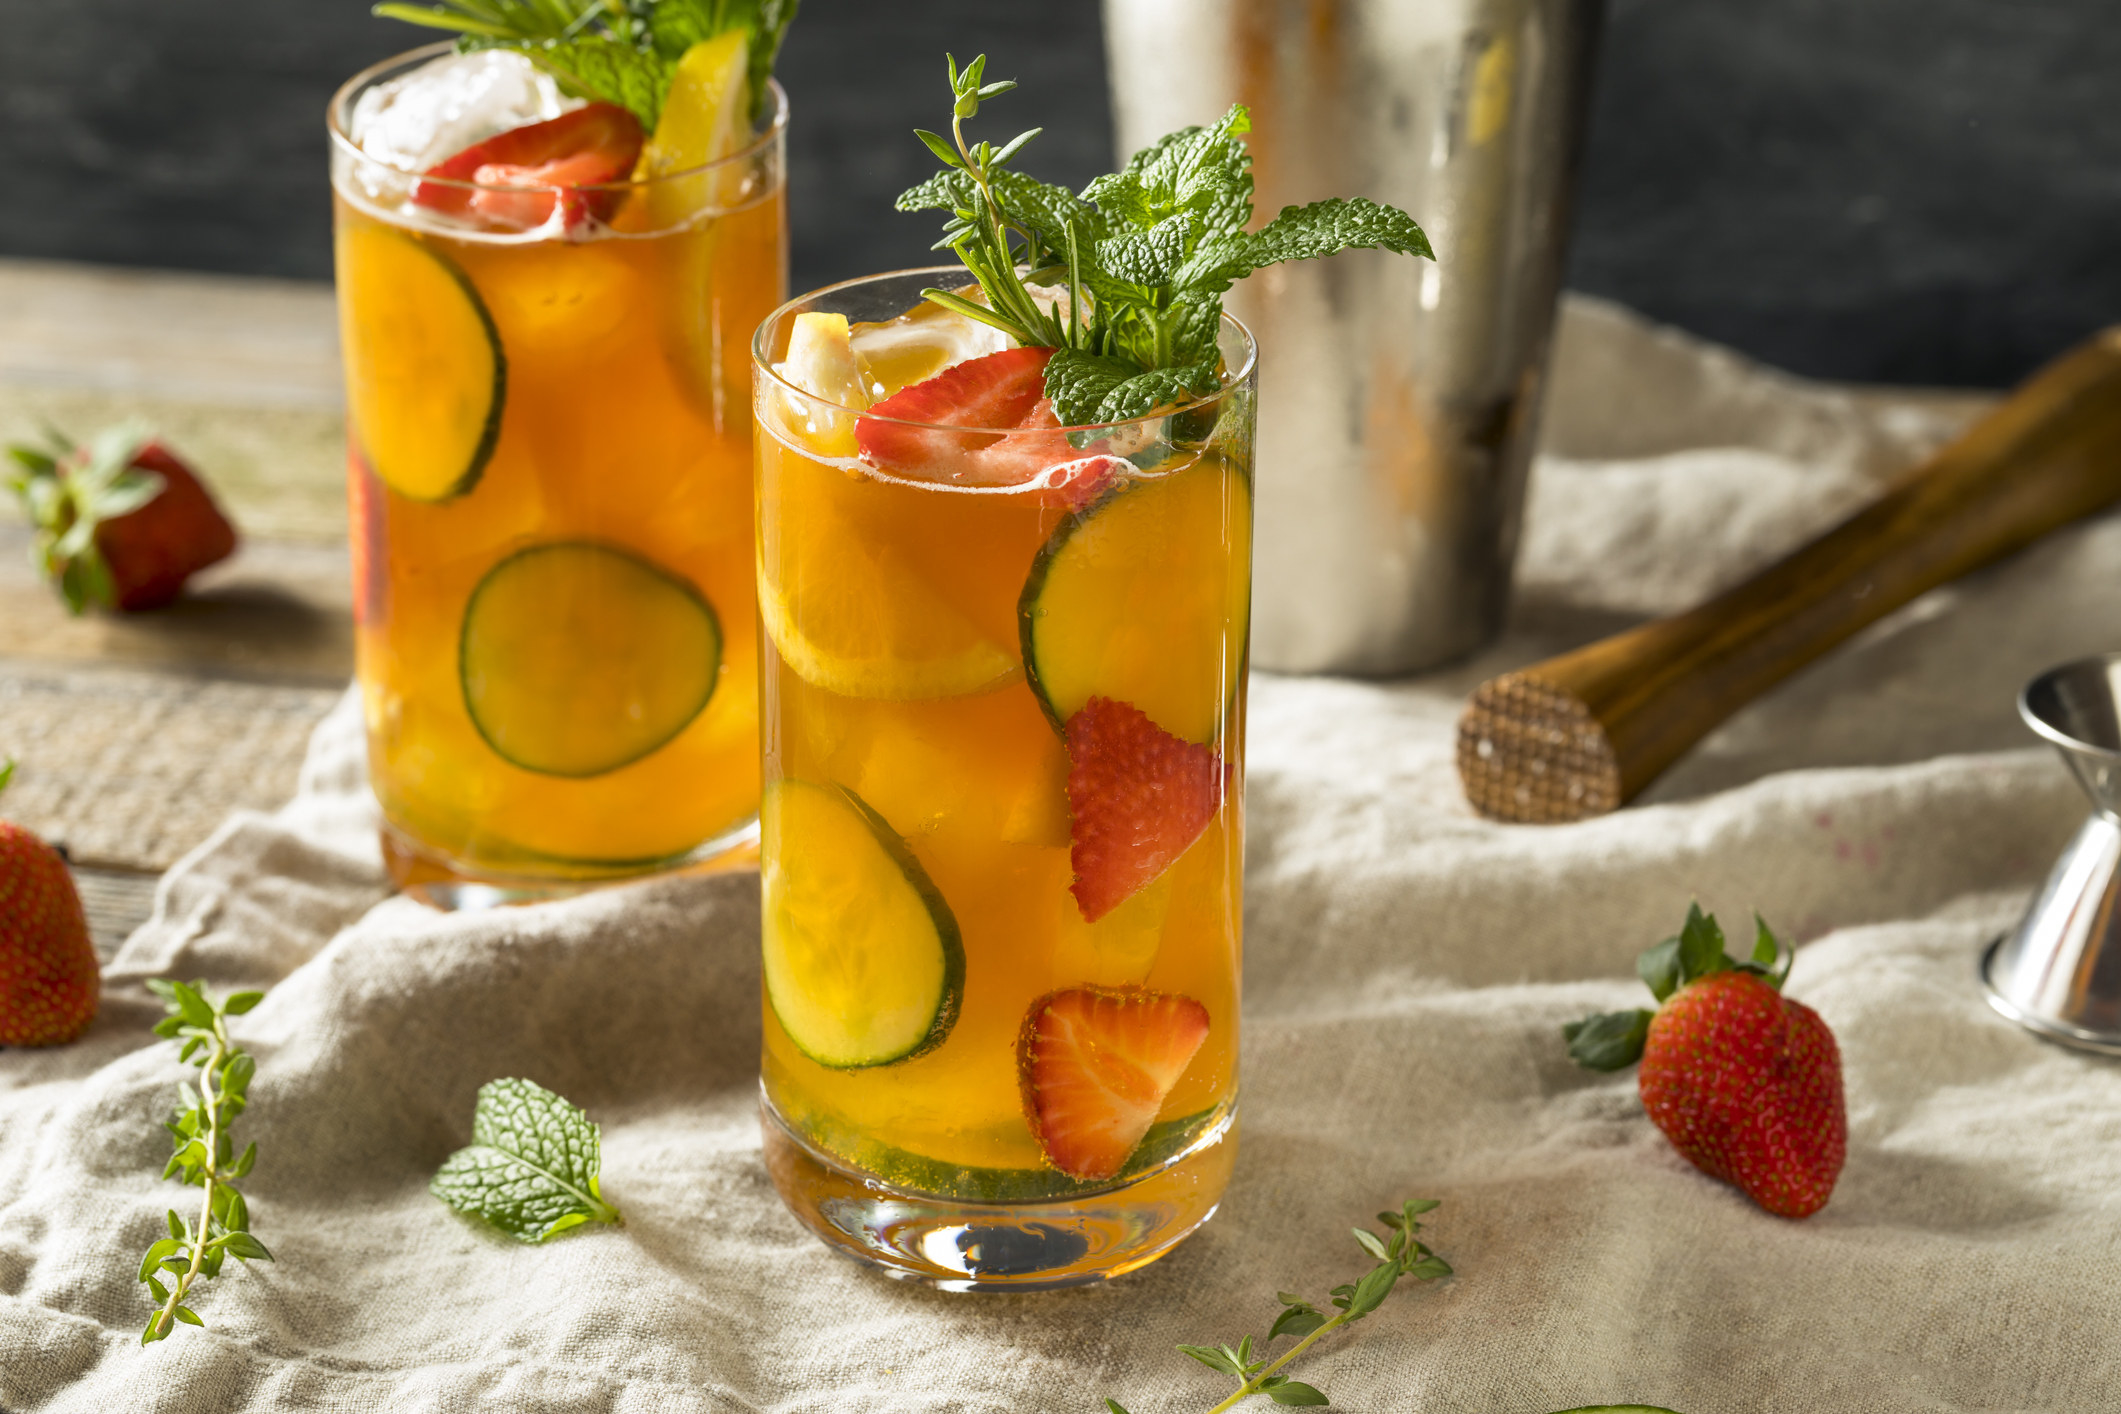 Two Pimm's Cups with lime and strawberries.